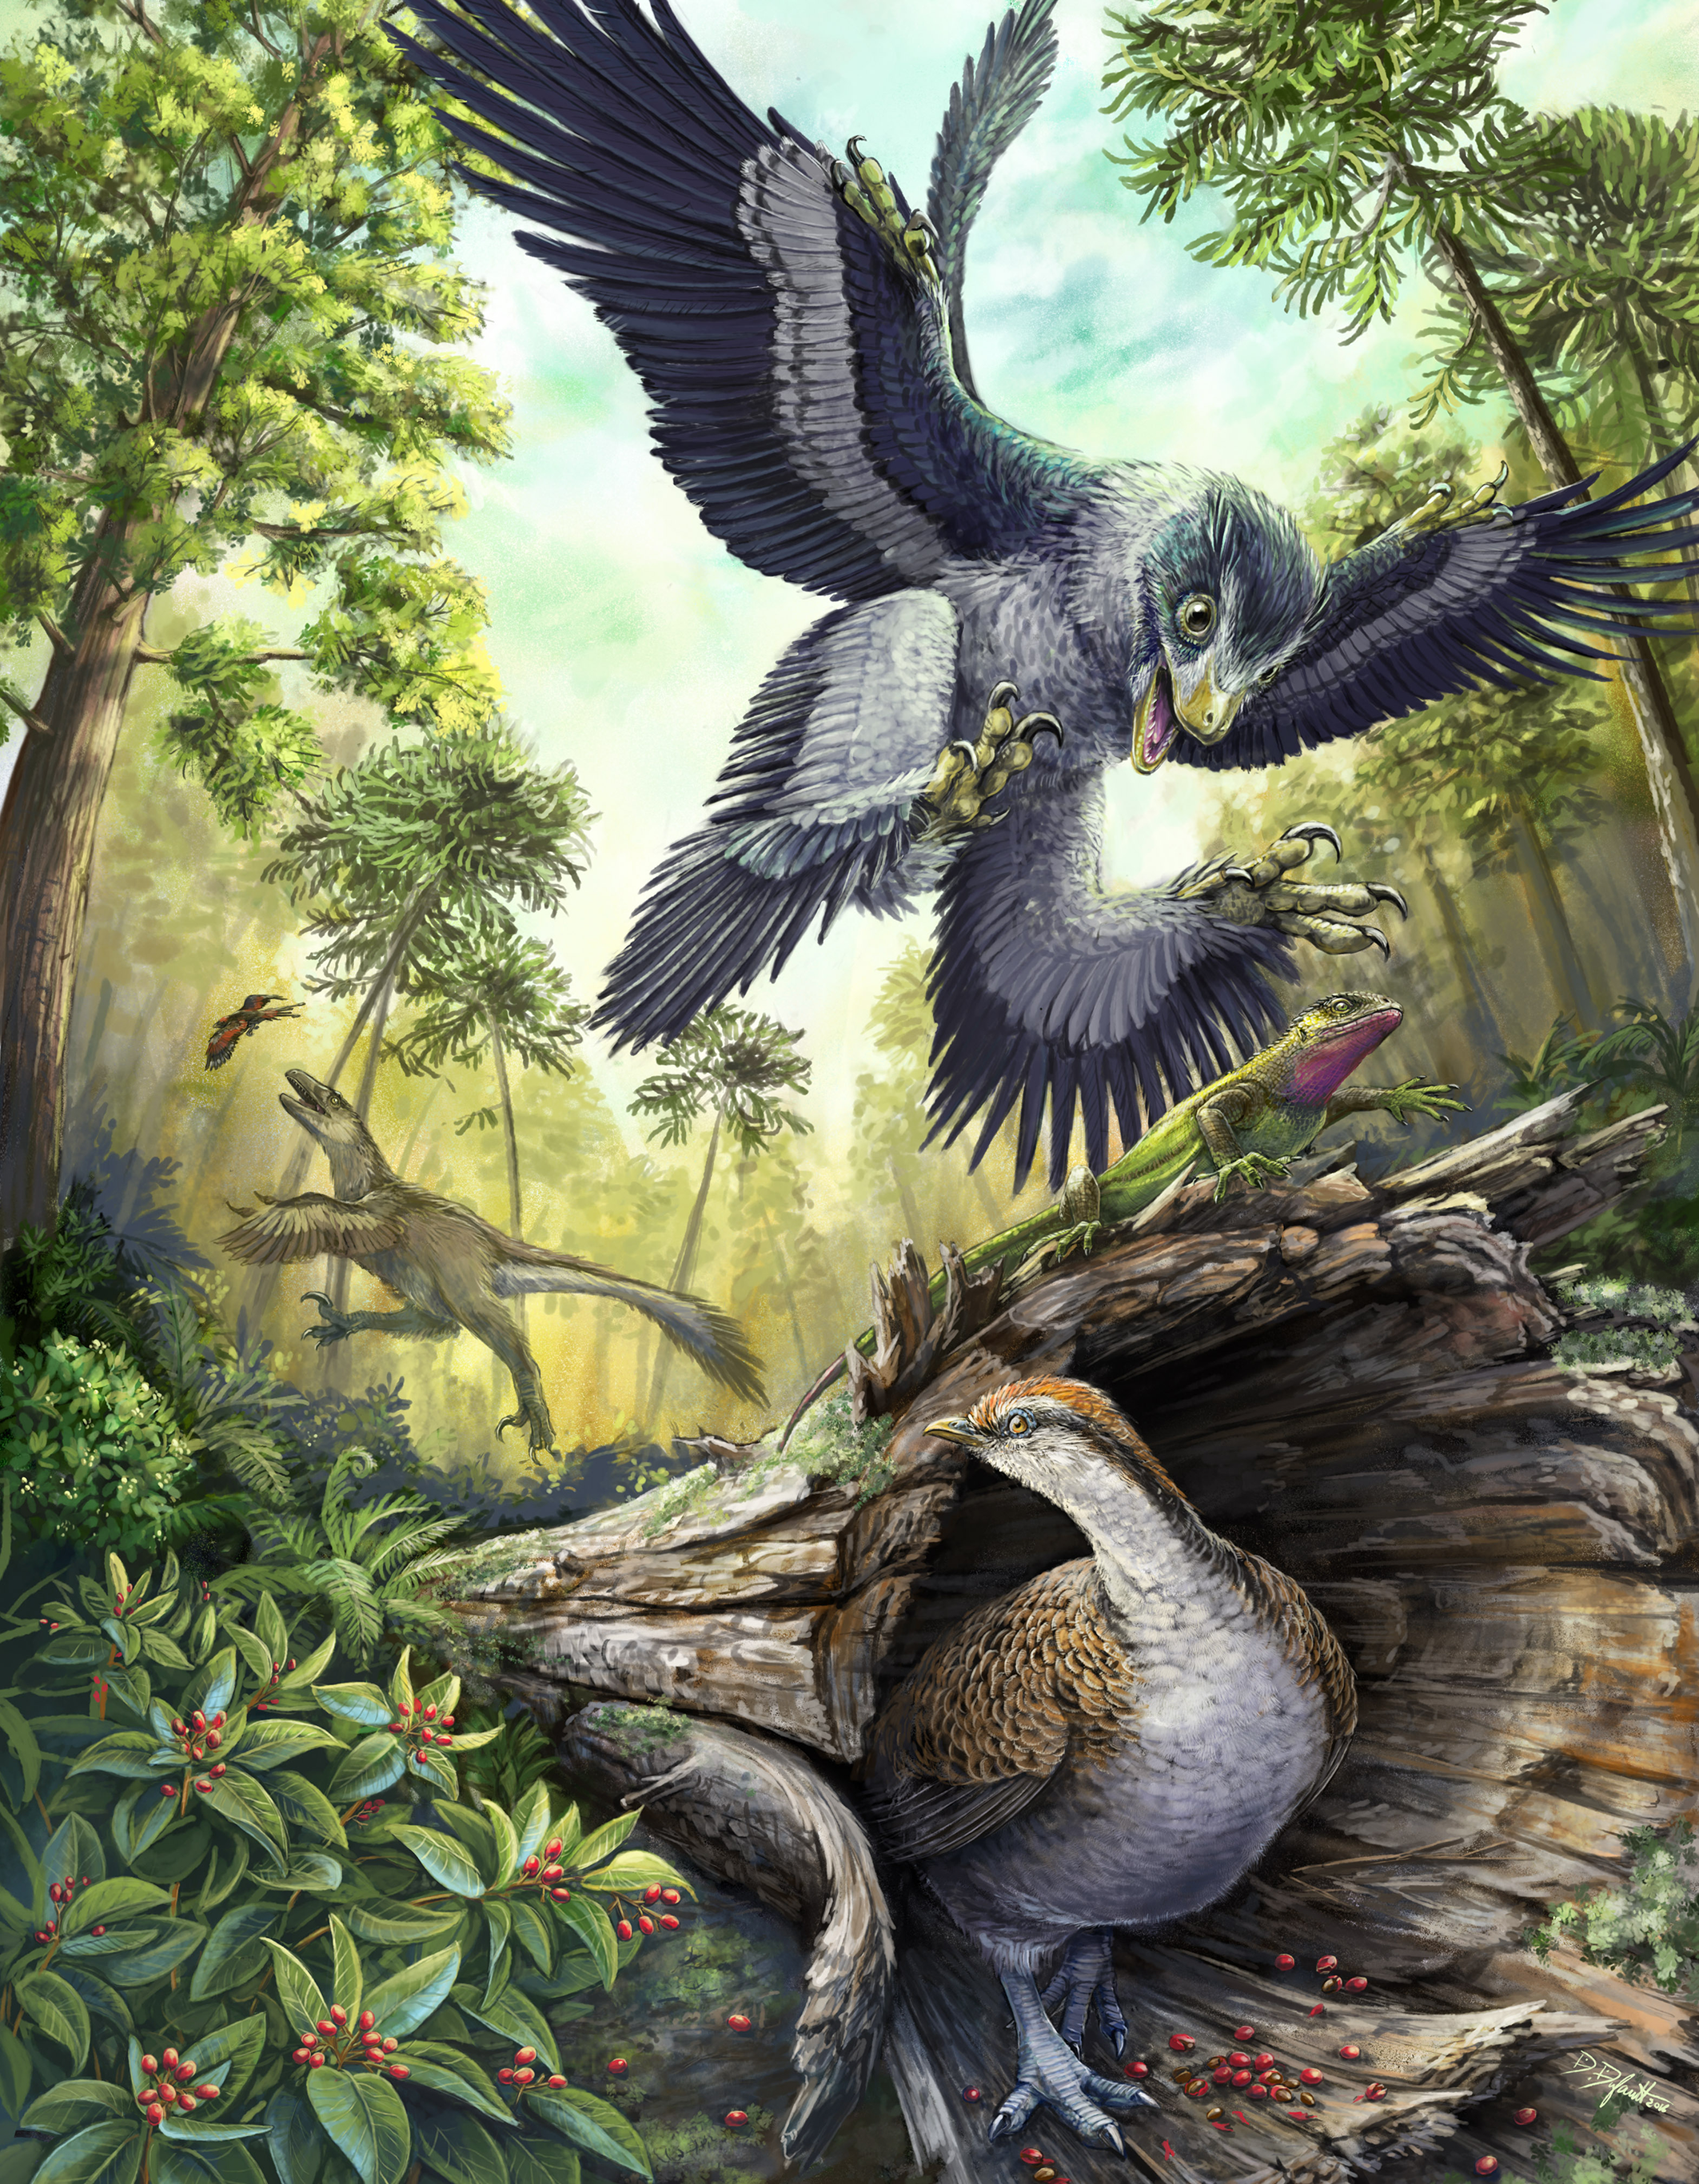 hellcreektheropods_ROM2016_15159_11 pieces of Paleoart that bring the past back to life!